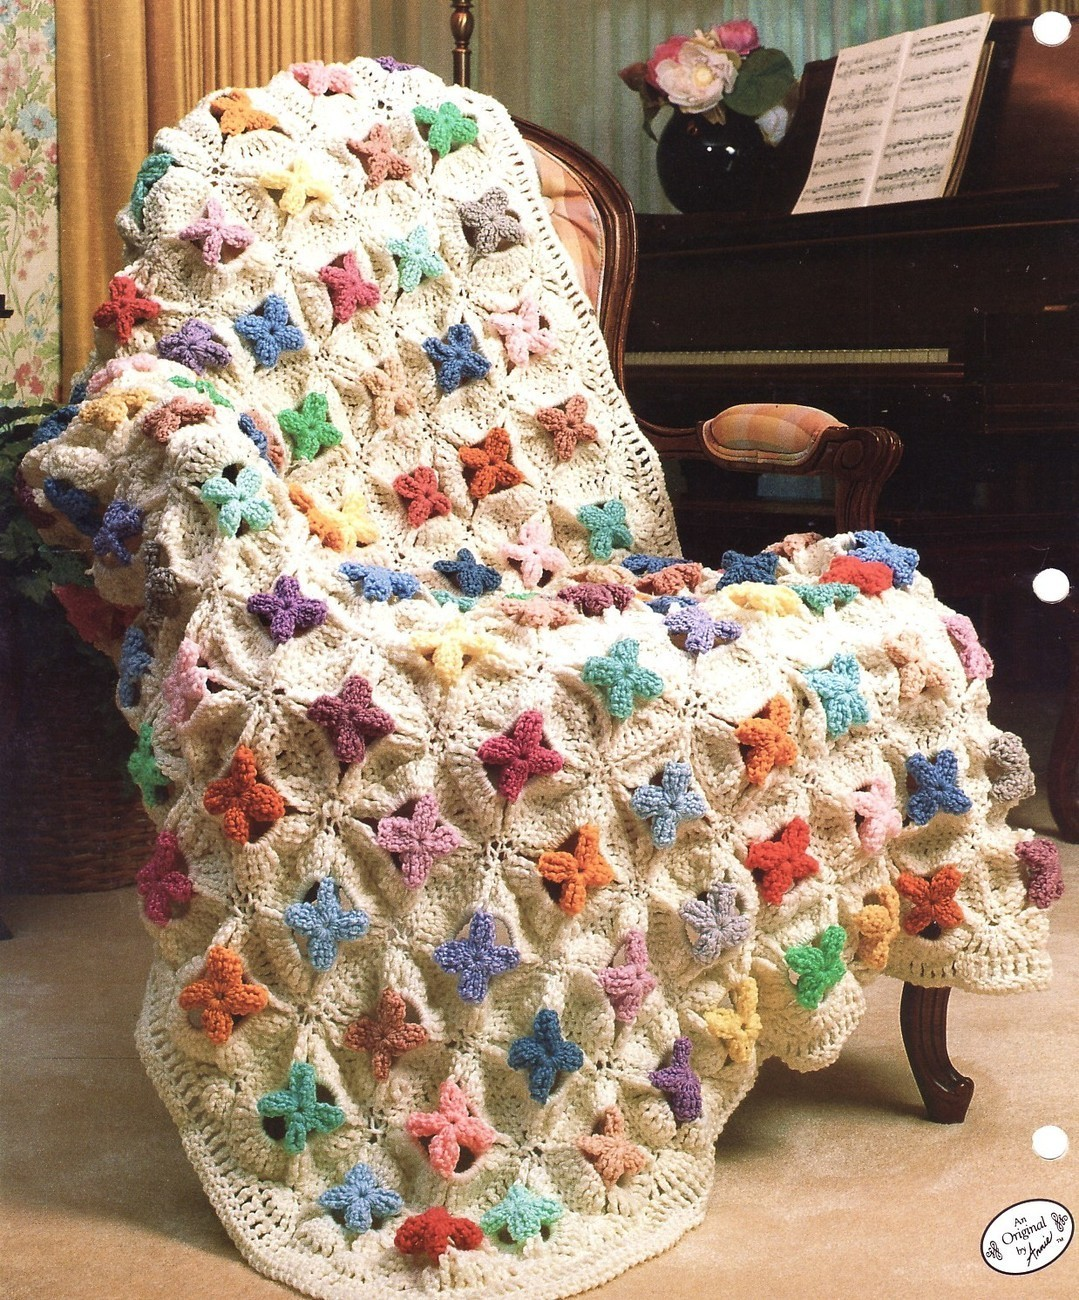 FREE CROCHET QUILT PATTERN - Crochet and Knitting Patterns